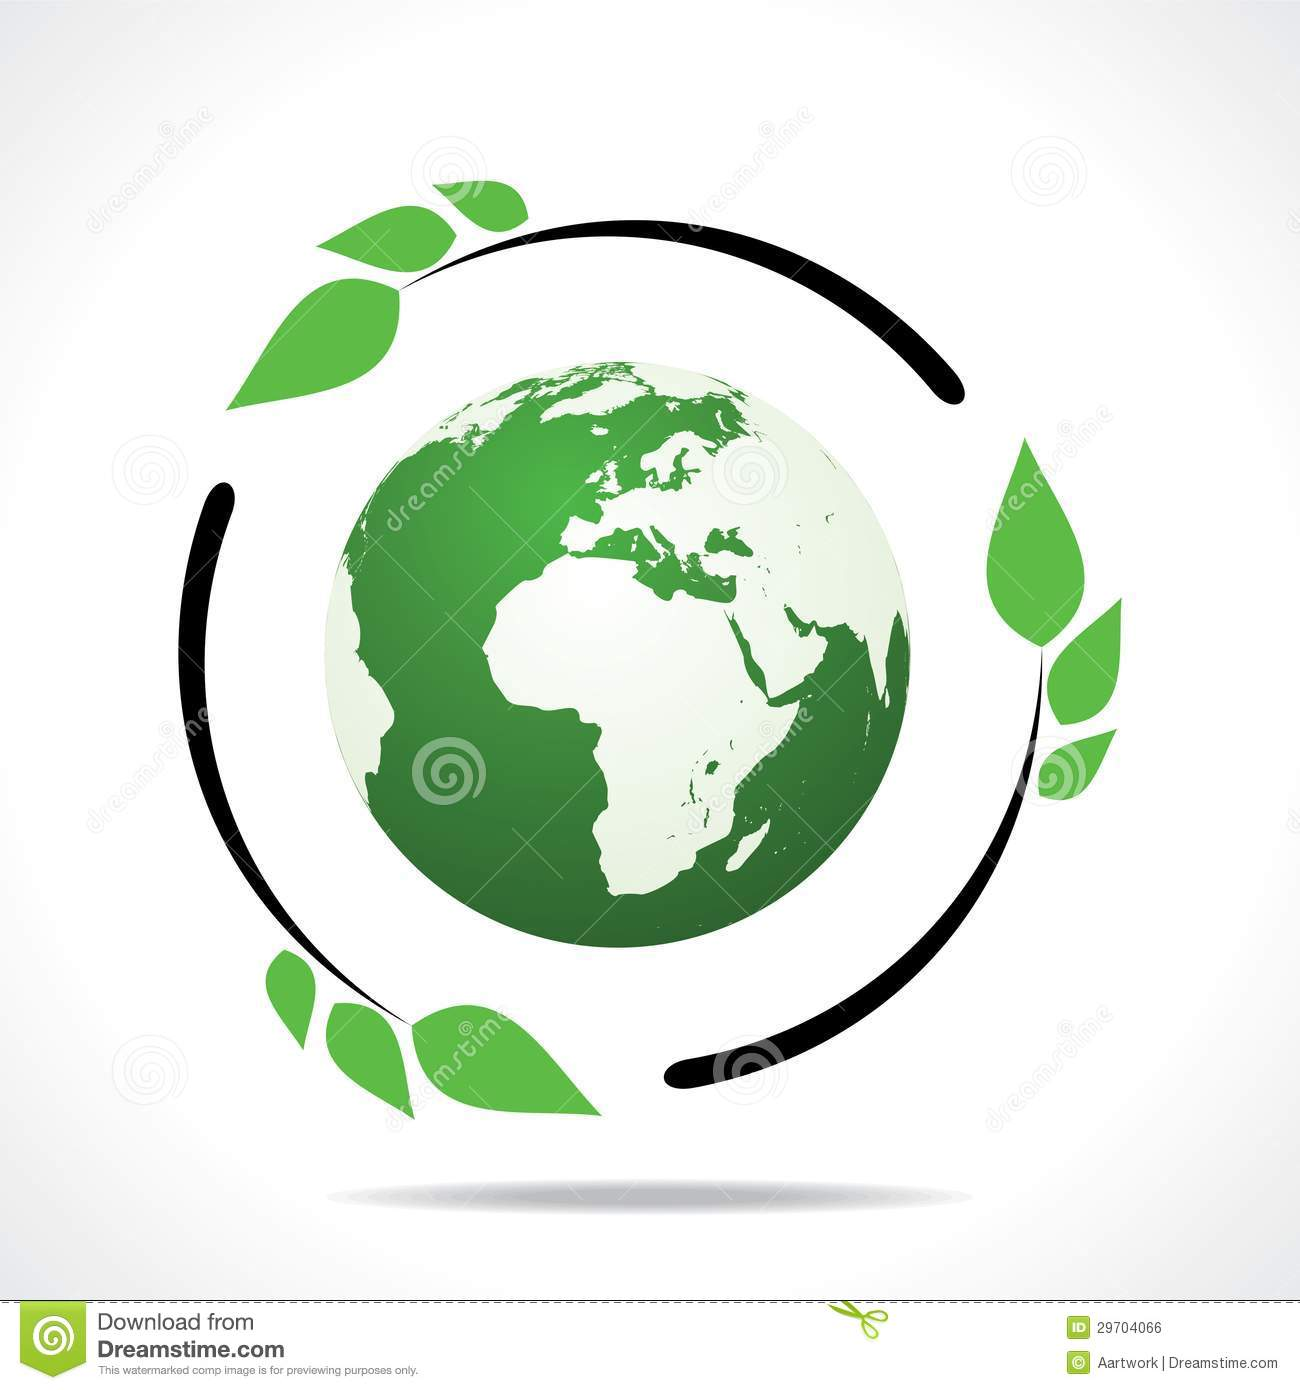 Eco Friendly Earth With Green Leaf Design Royalty Free